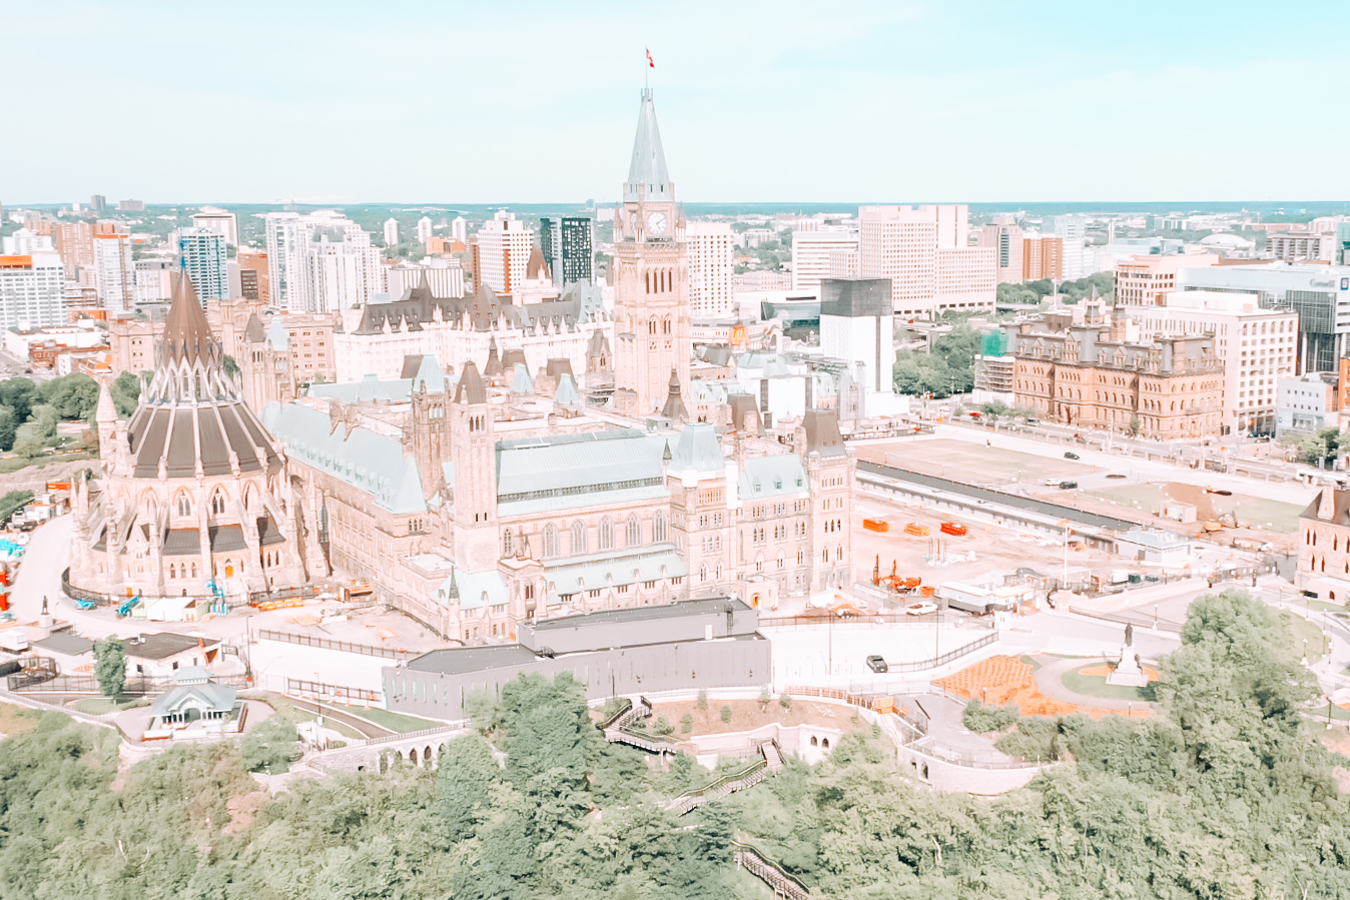 View of buildings in Ottawa